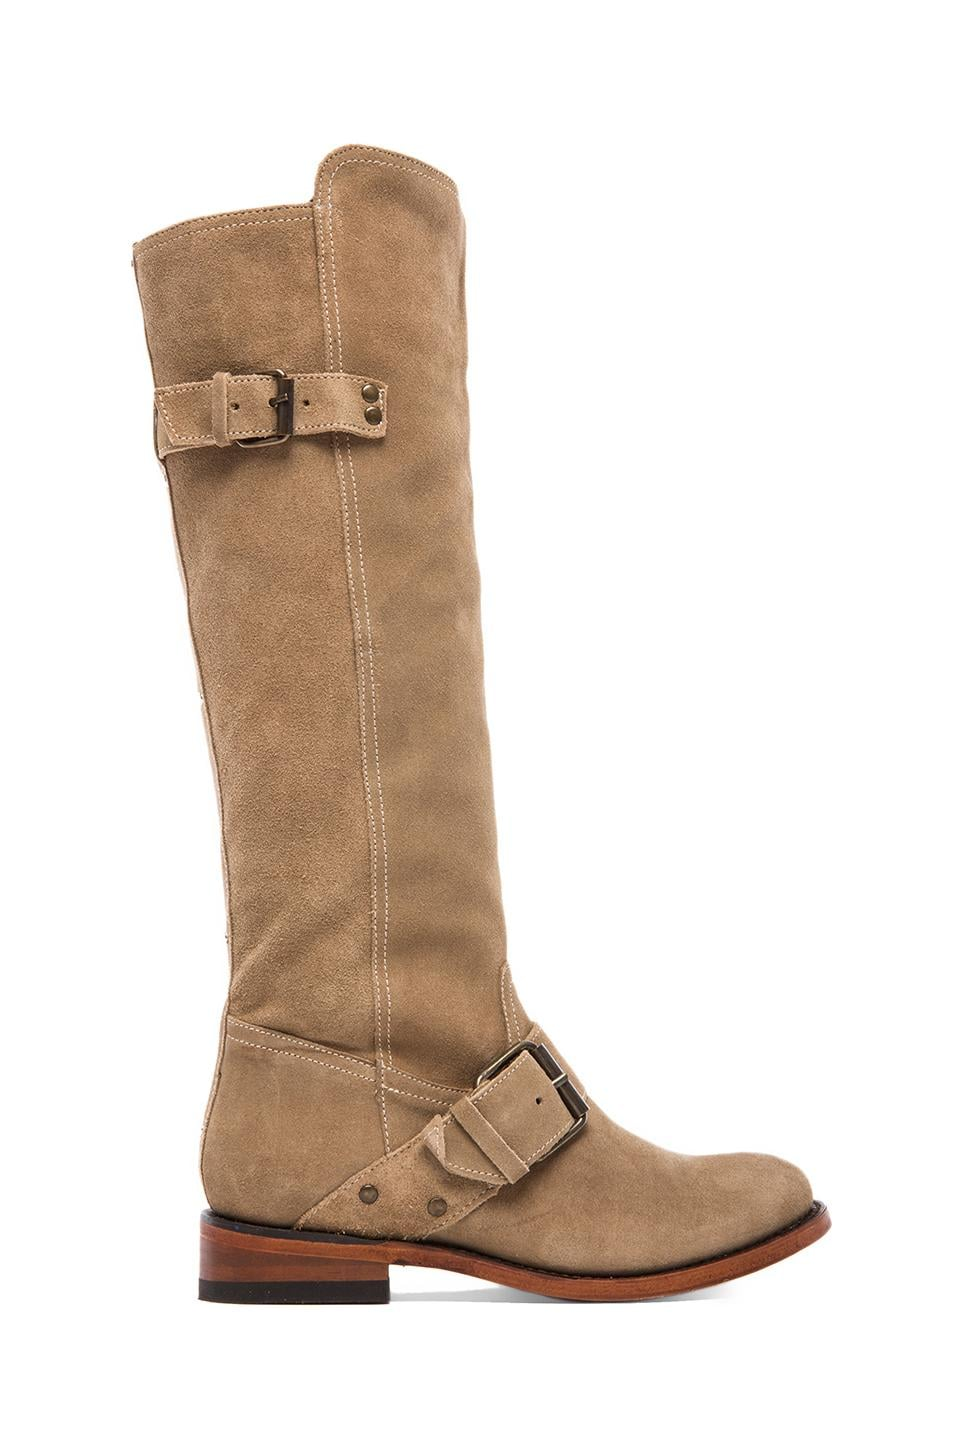 Dolce Vita Lucianna Boot in Taupe